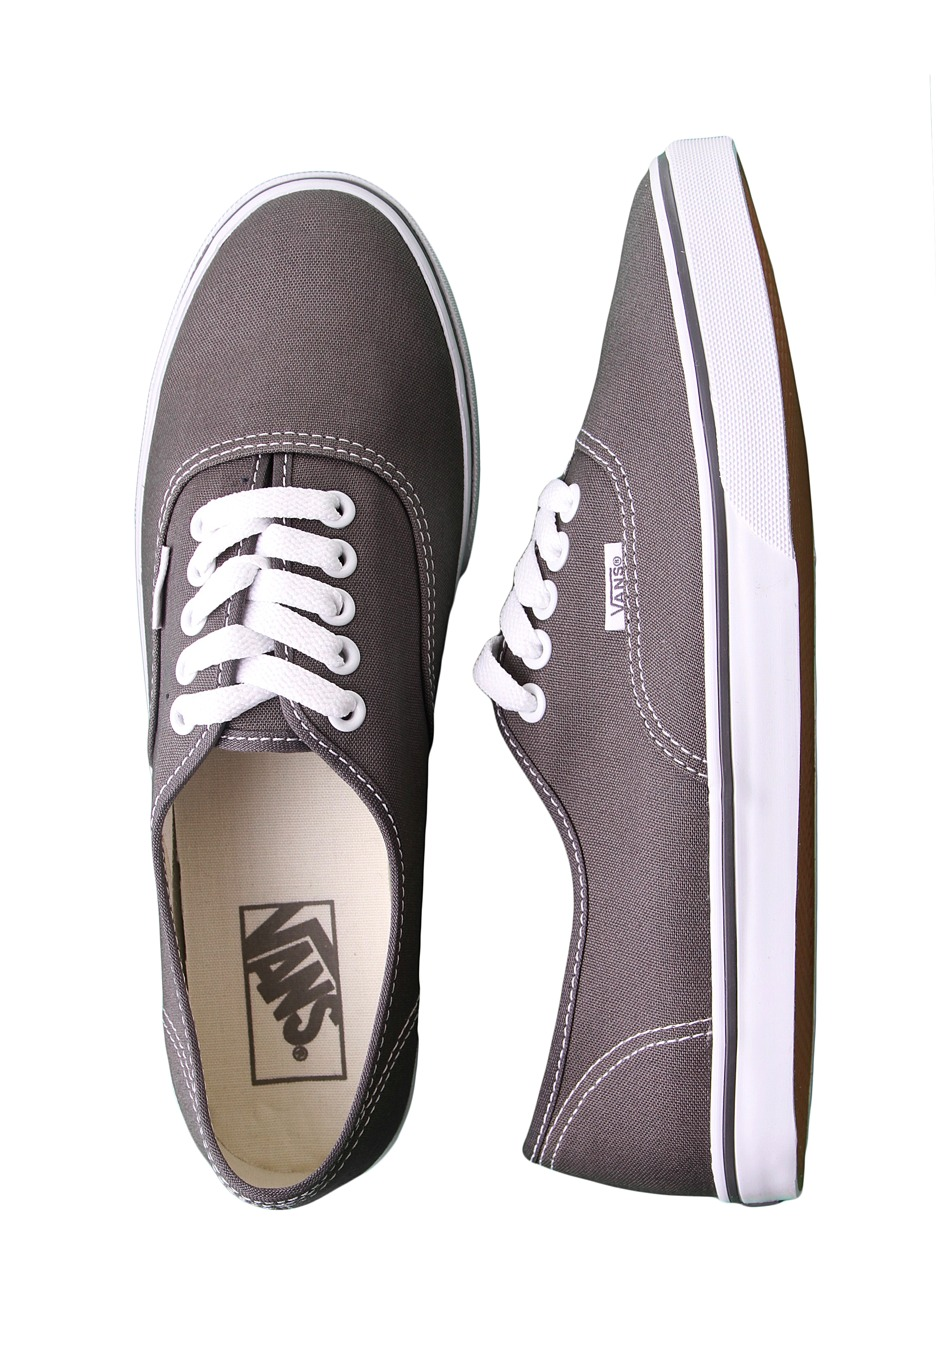 6515ae8537 Vans - Authentic Lo Pro Pewter True White - Girl Shoes - Impericon.com UK